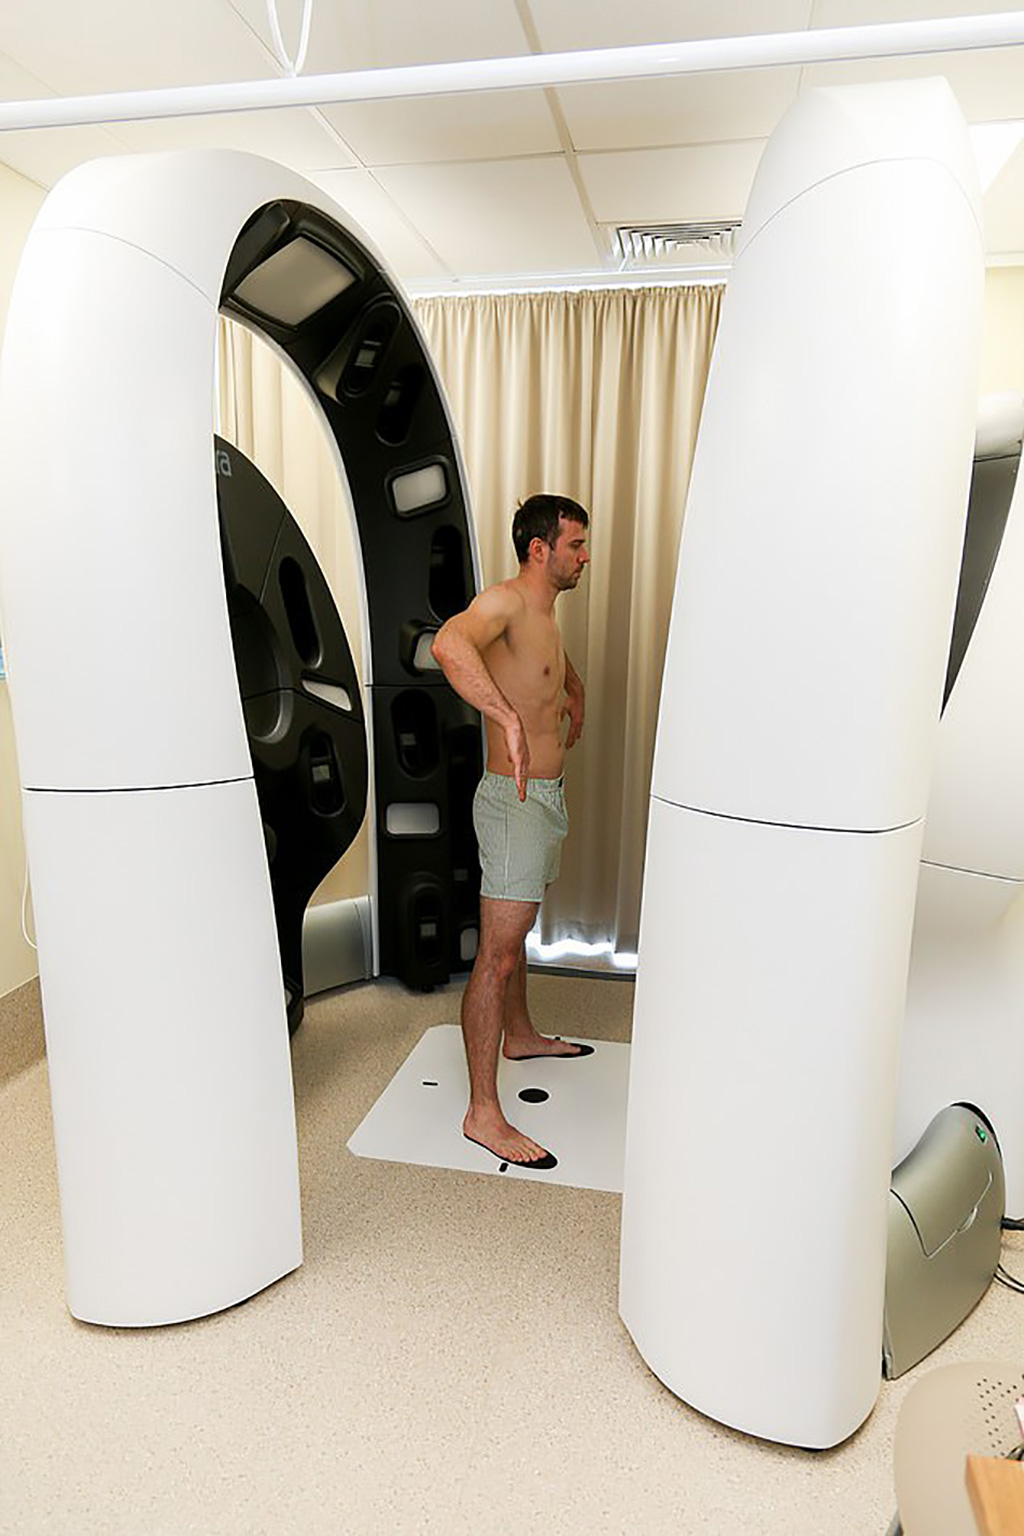 Image: A 3-D fully body imaging scanner can map the entire body in one second (Photo courtesy of ACEMID)